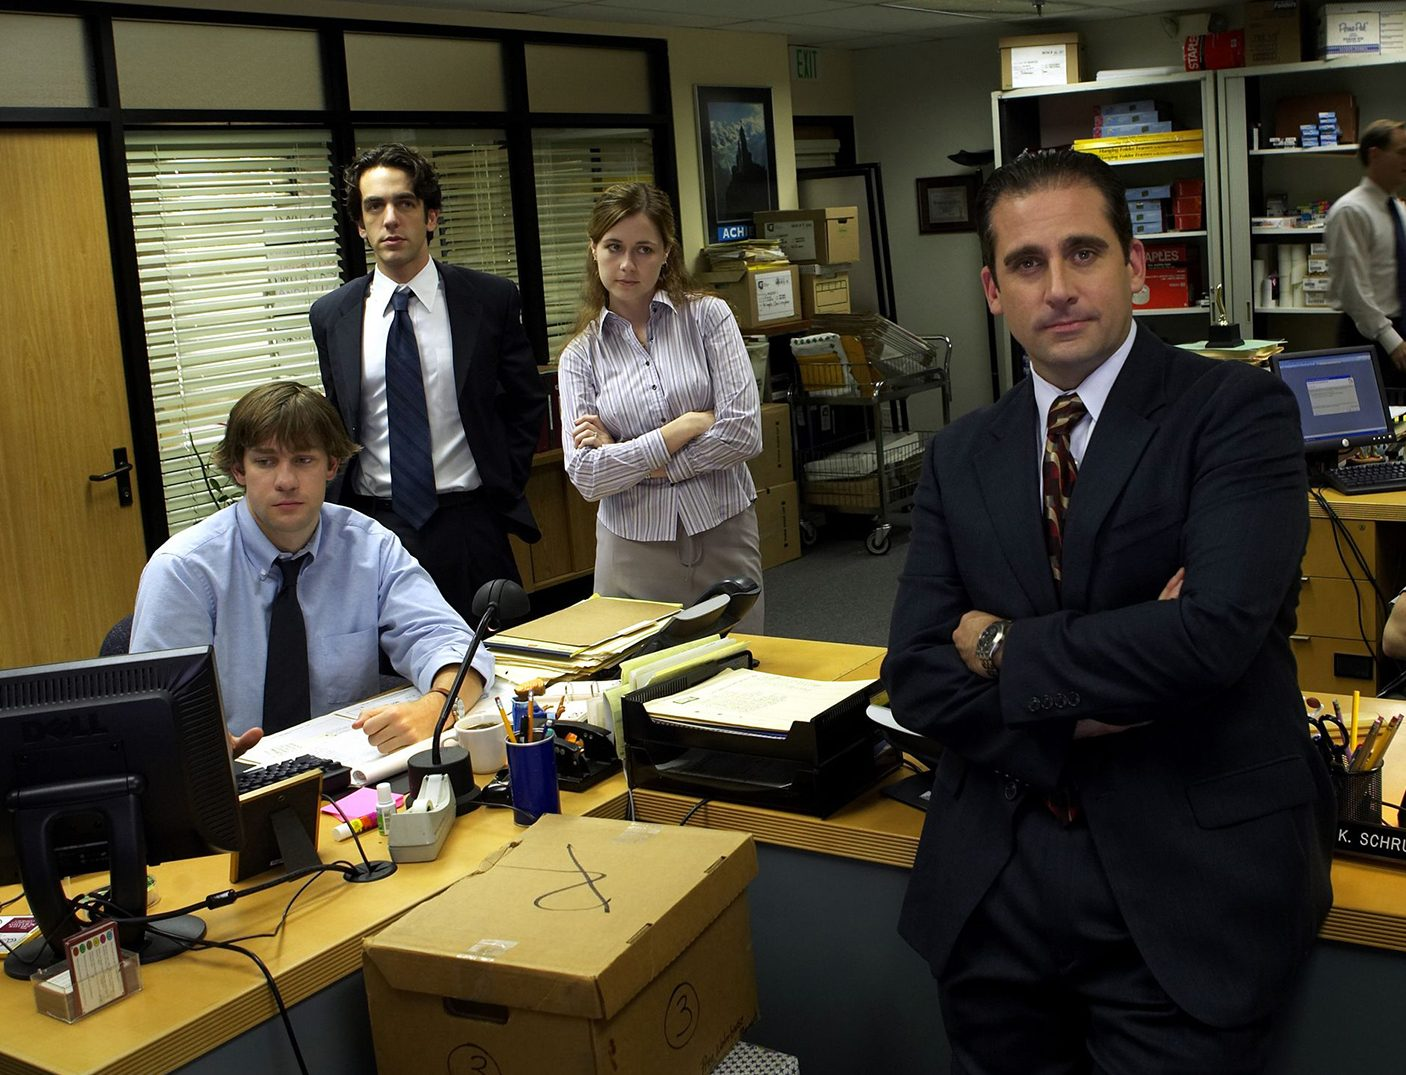 office-rules-pics1